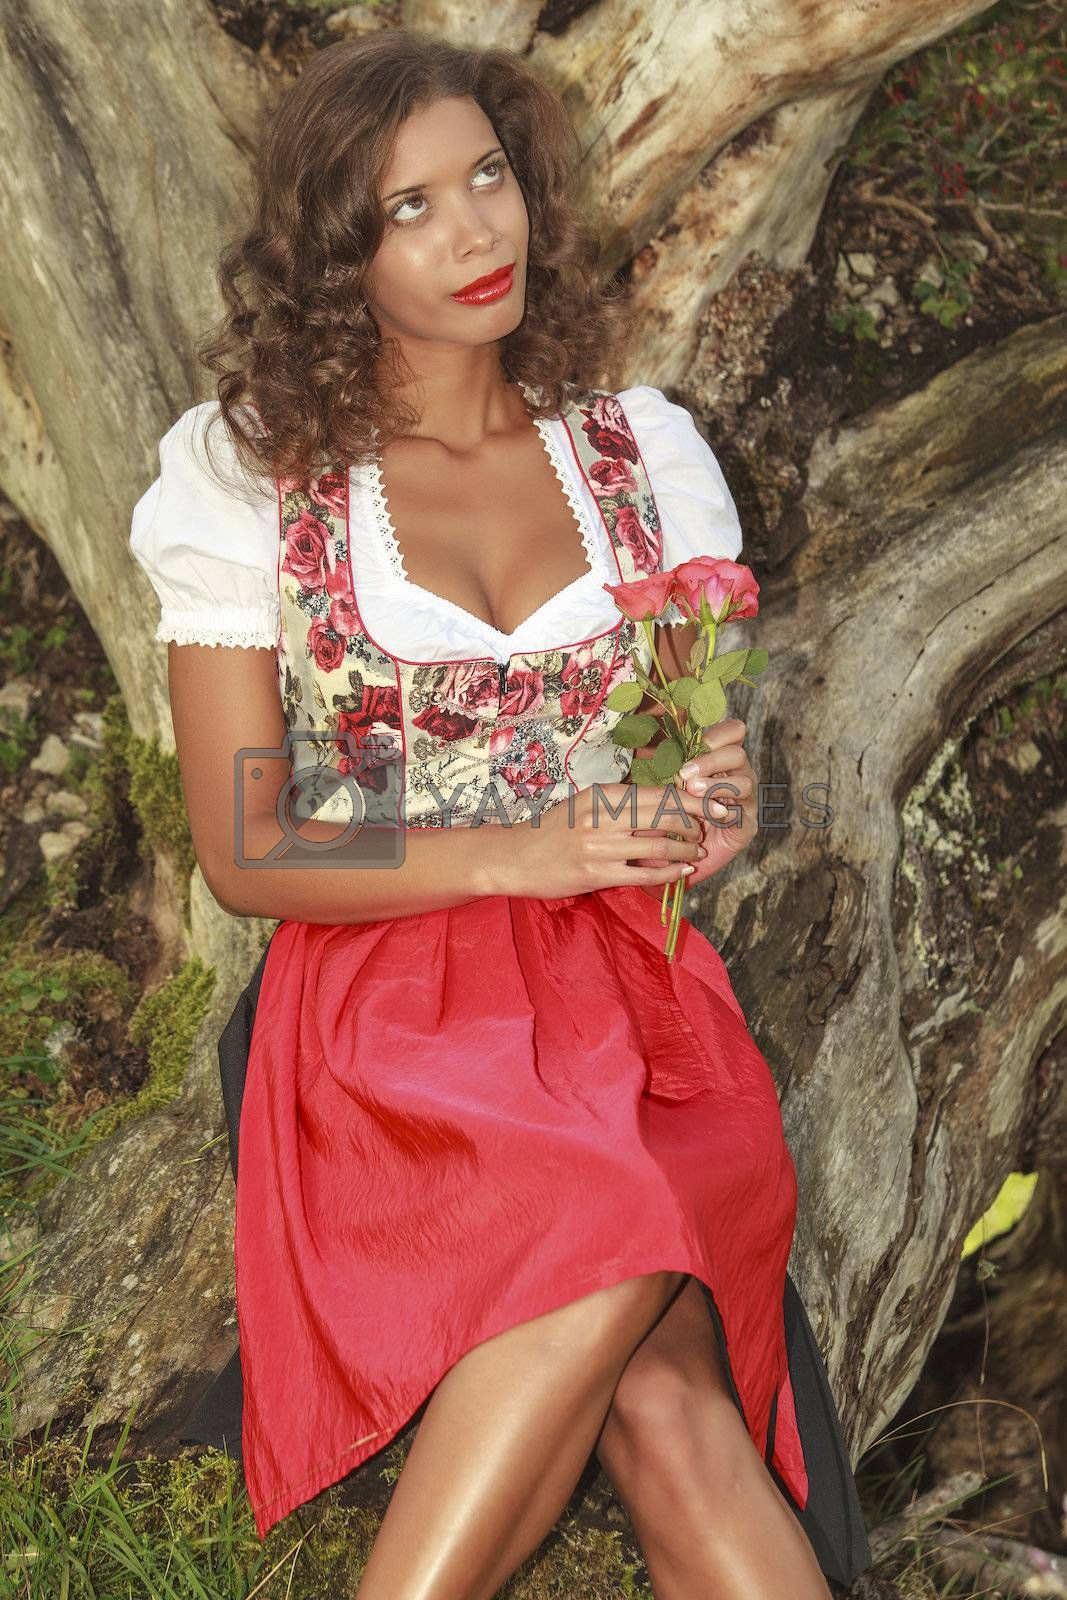 Brazilian woman in Bavarian dress with roses in hand dreams to himself.